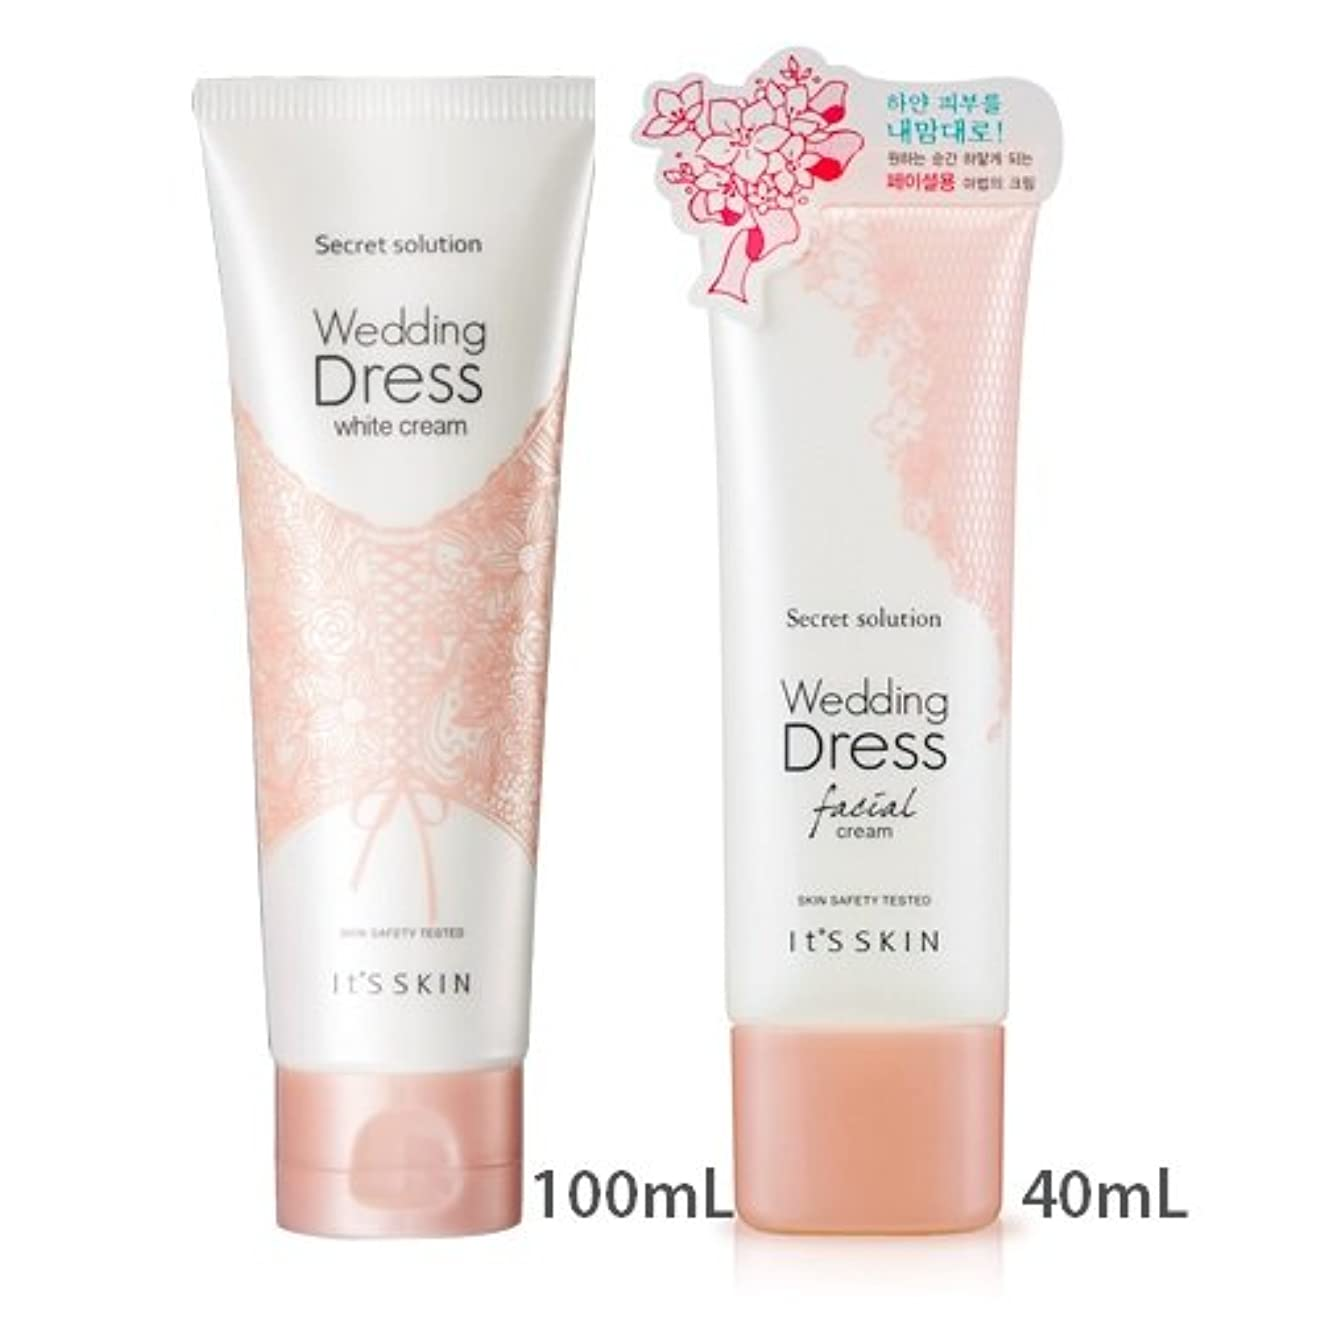 審判ロープにおい[1+1] It's skin Secret Solution Wedding Dress Facial Cream 40mL + Secret Solution Wedding Dress Cream 100mL イッツスキン...